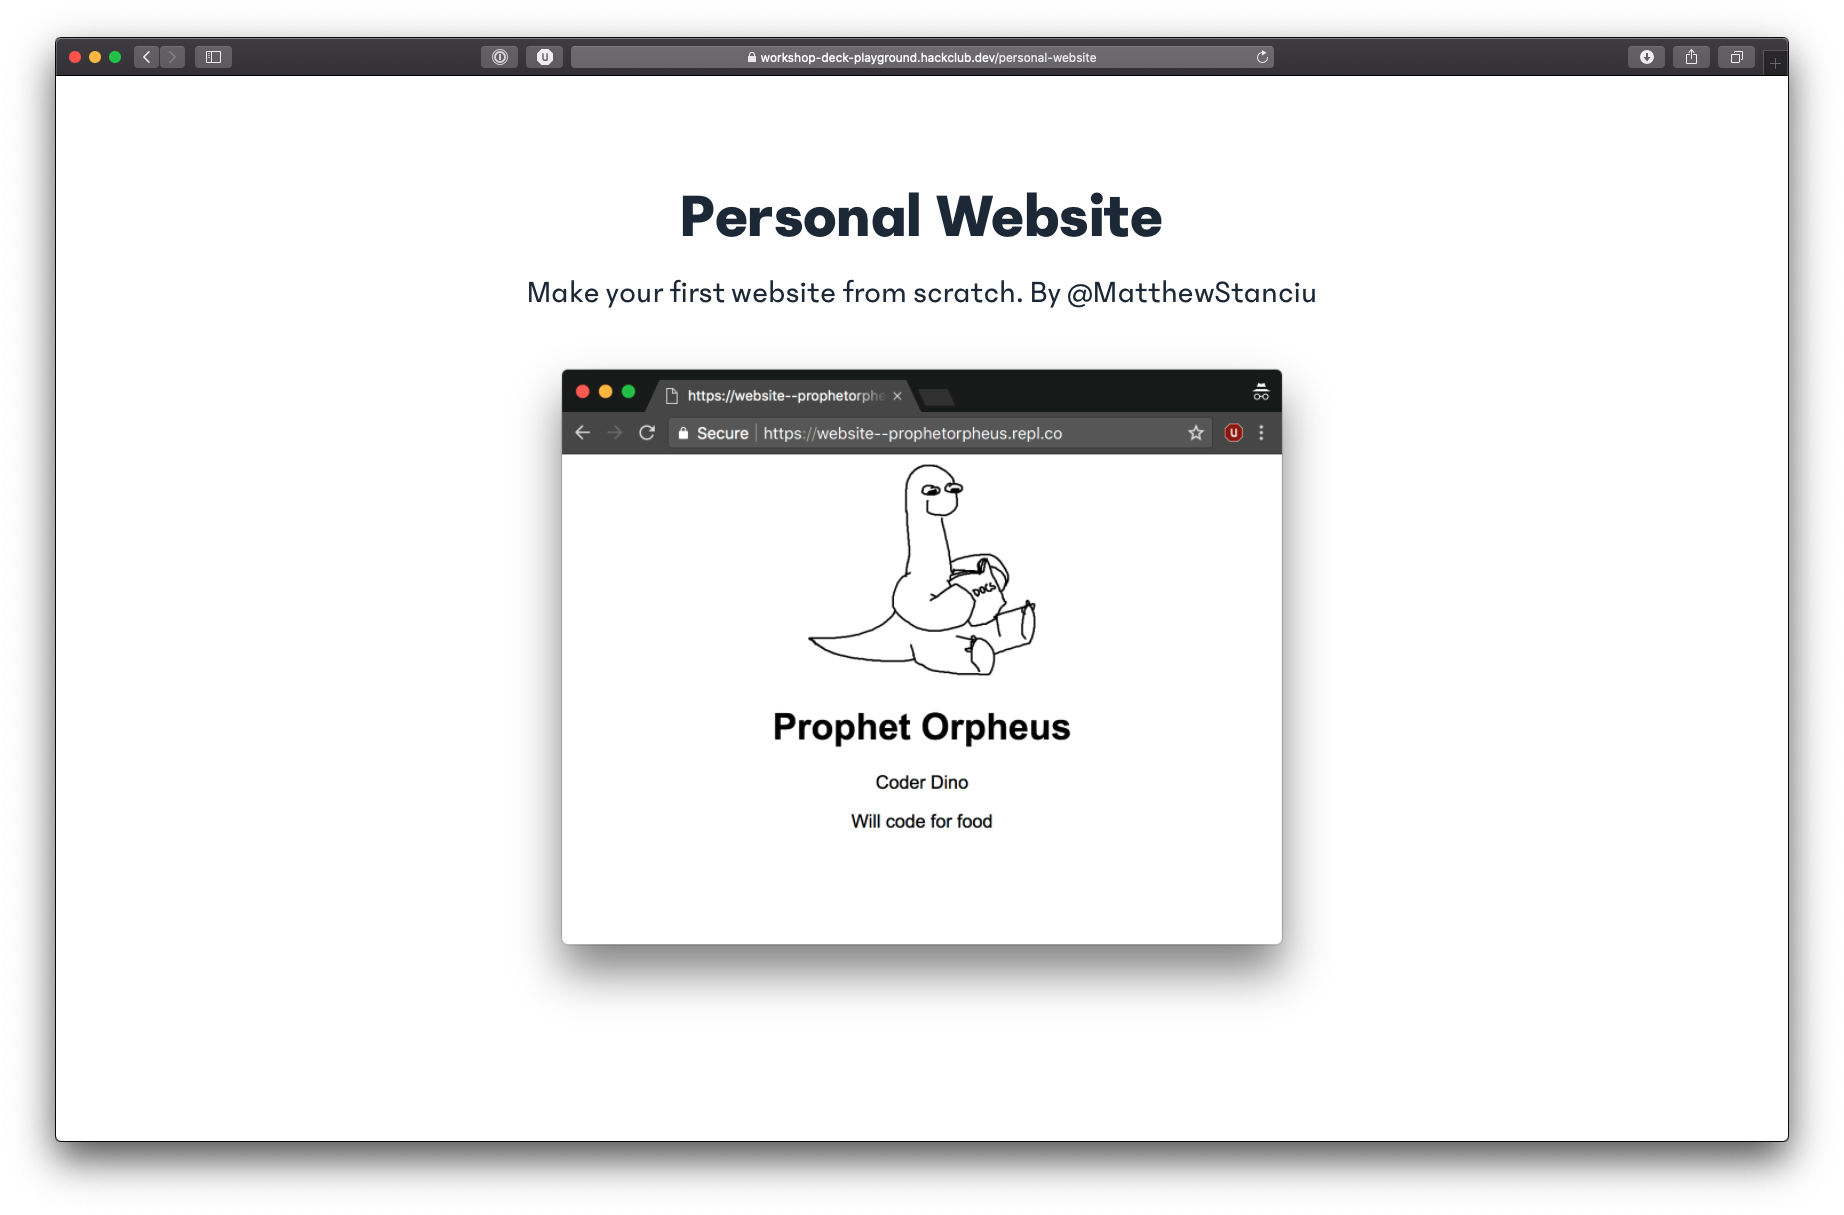 Screenshot of the new personal website workshop